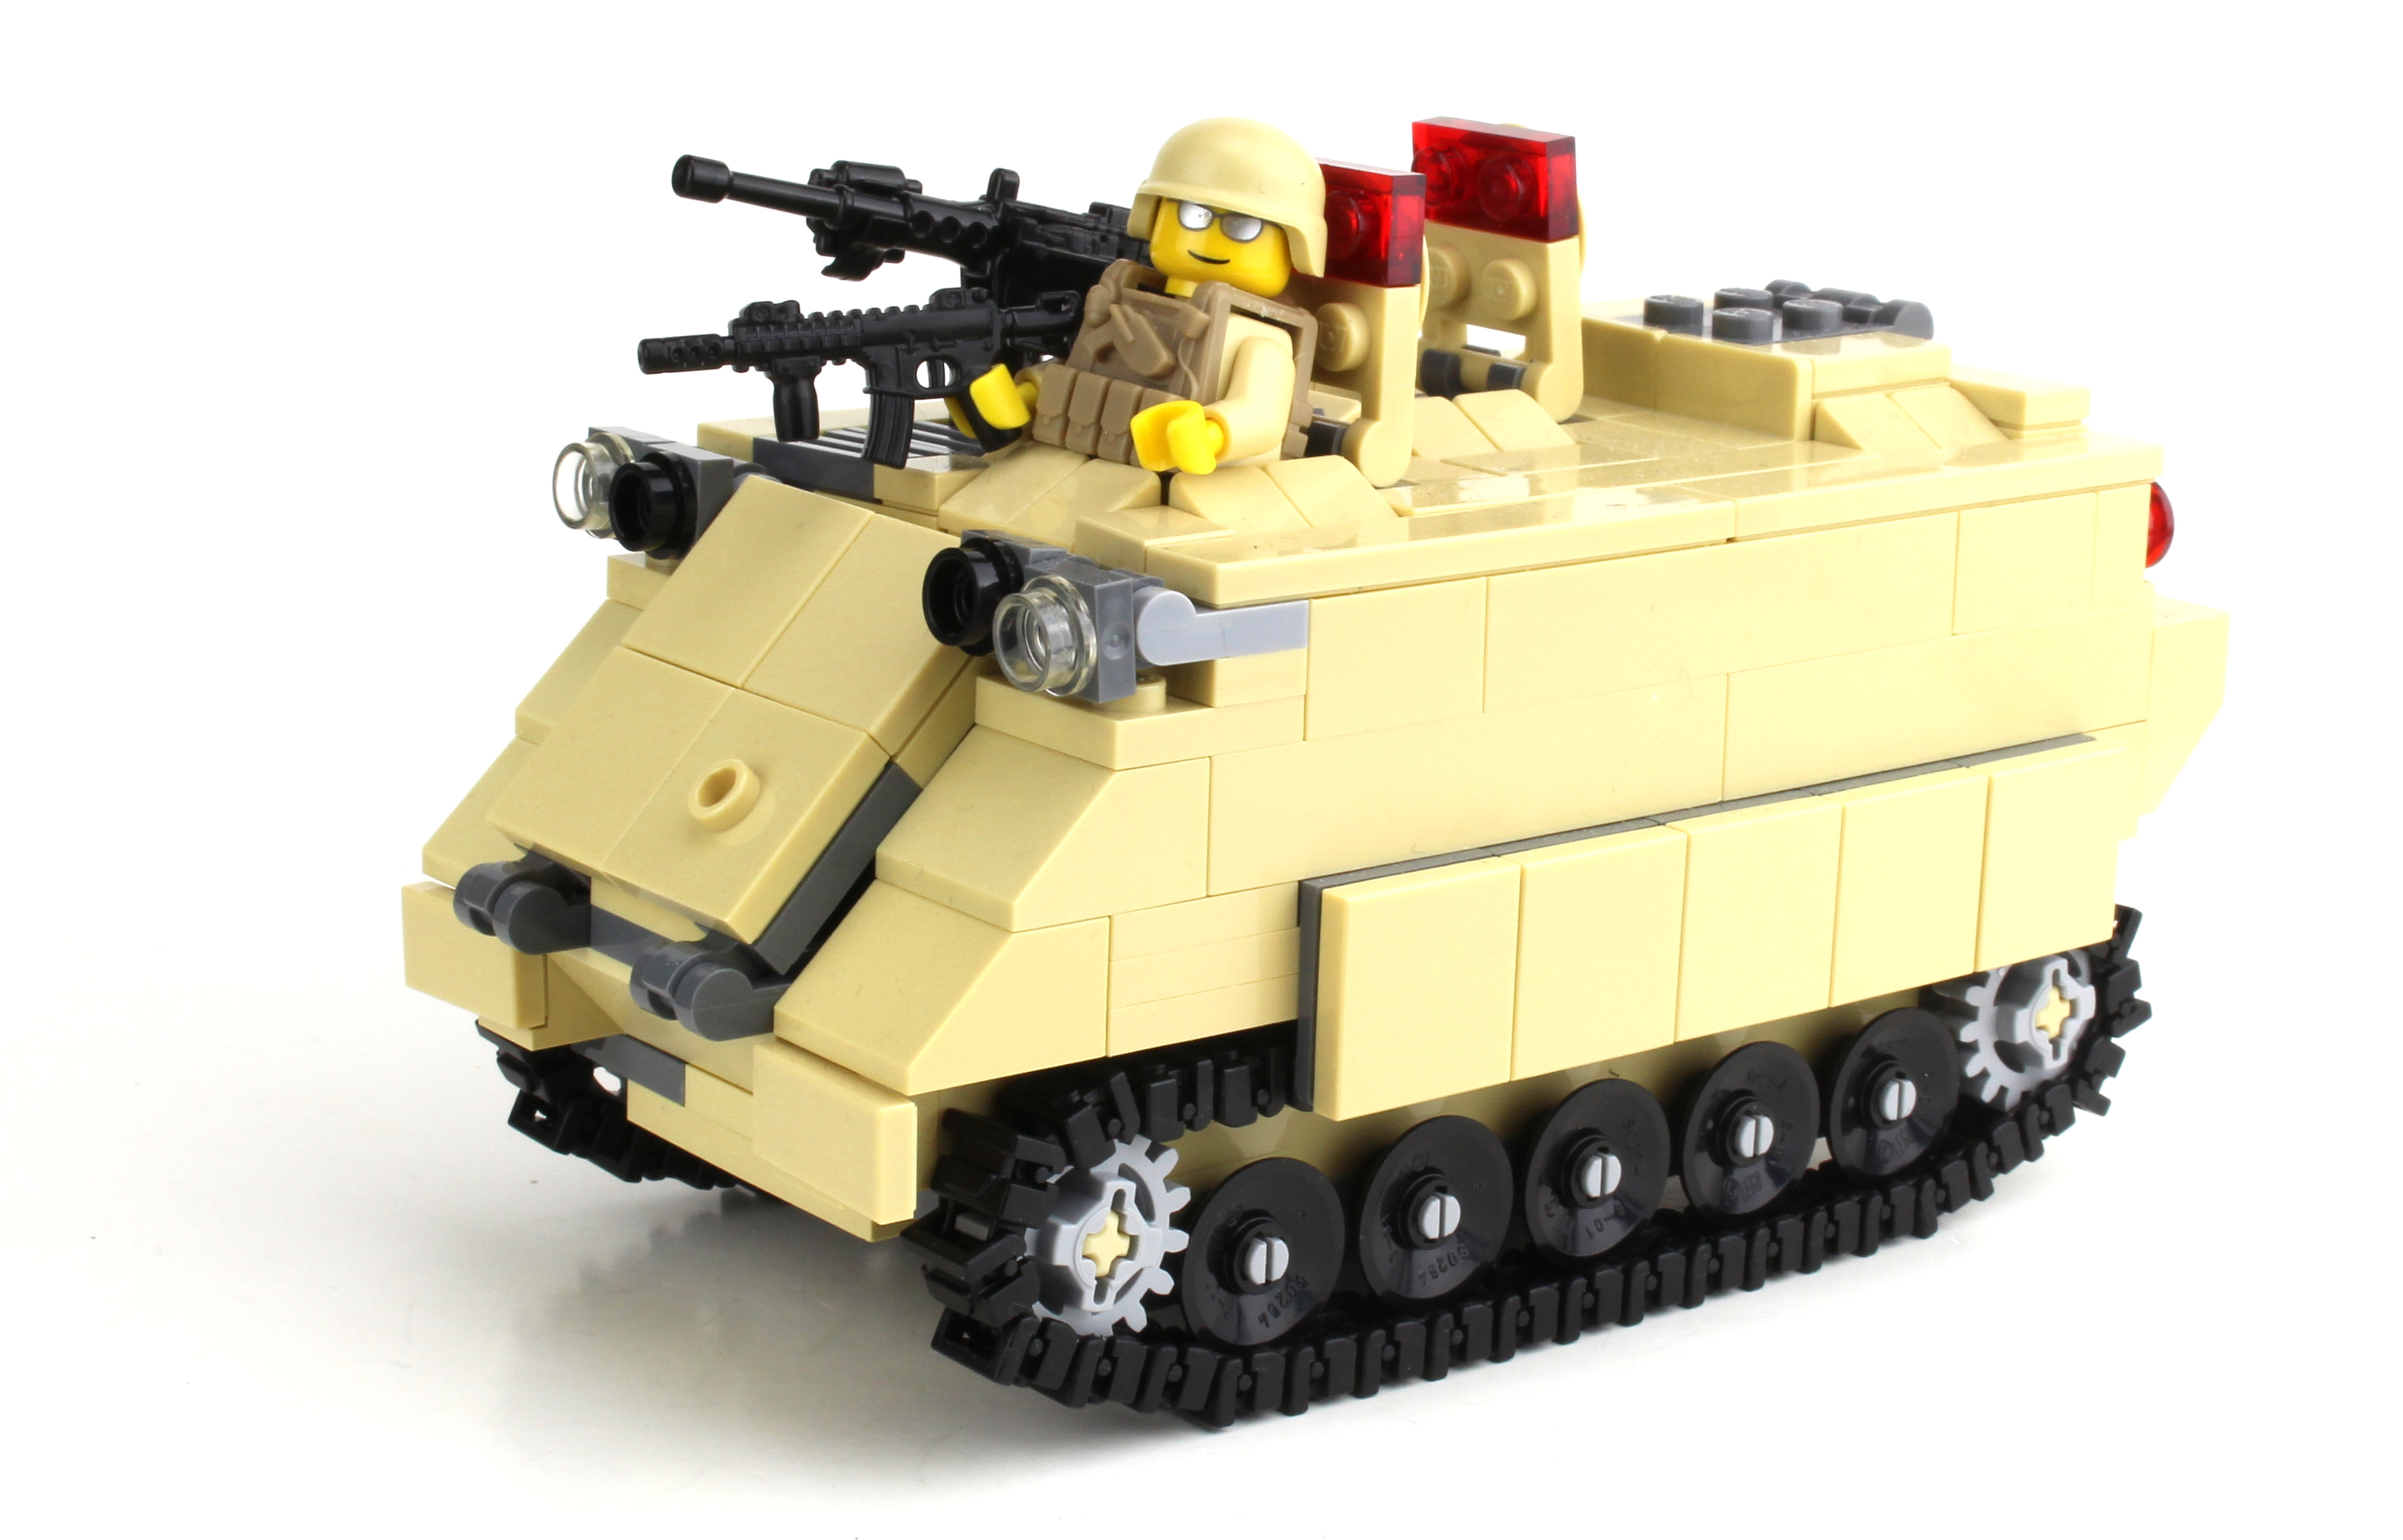 M113 Apc Army Tank Made With Real Lego Bricks